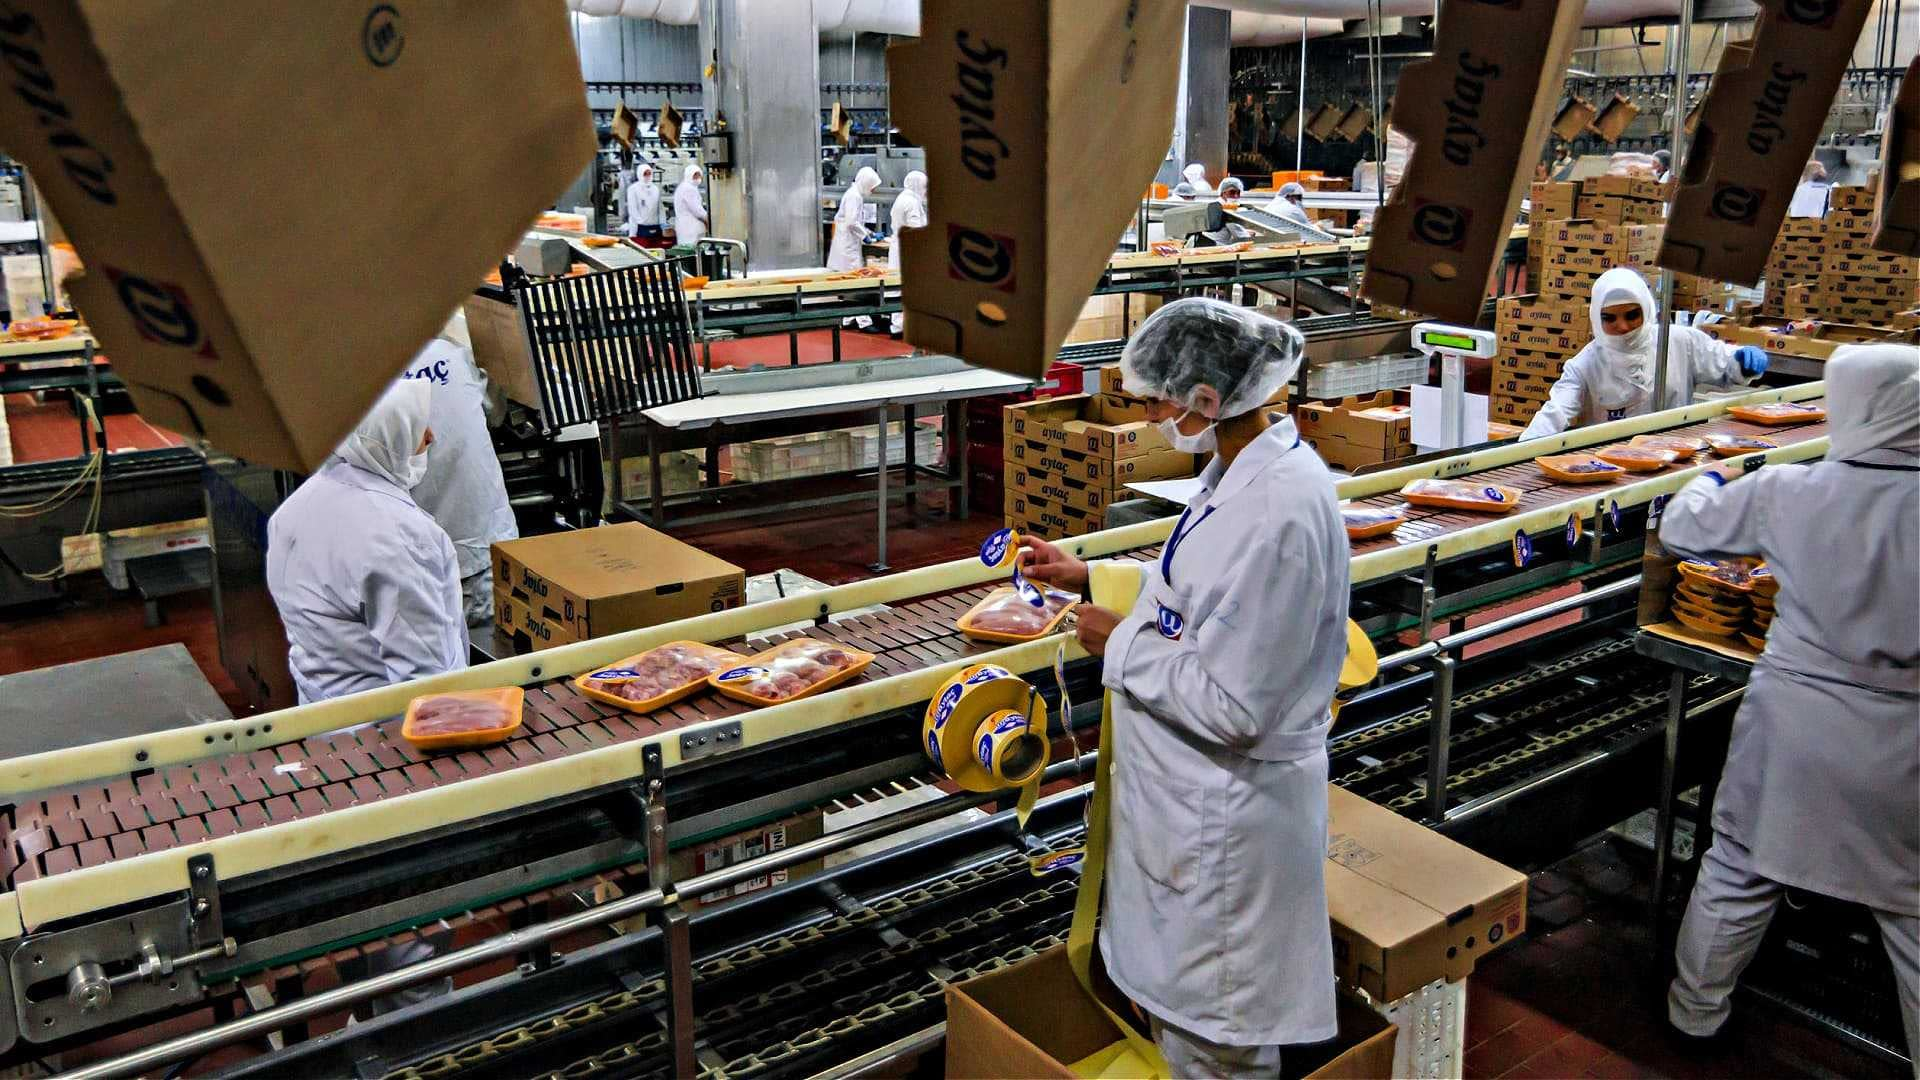 world-study-97-billion-tons-of-greenhouse-gas-emissions-come-from-meat-production-each-year-olive-oil-times